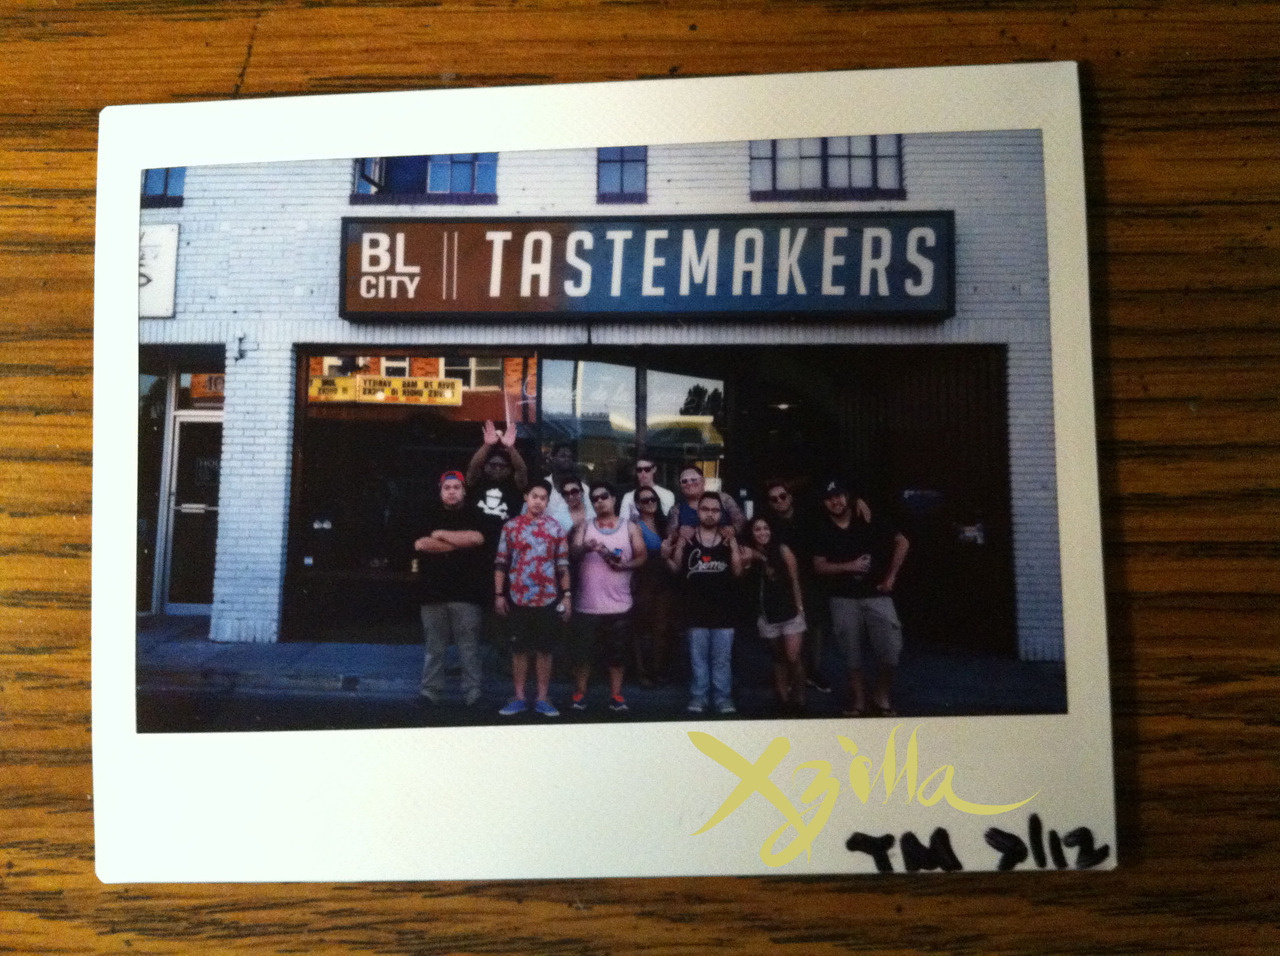 Tastemakers. BL City.